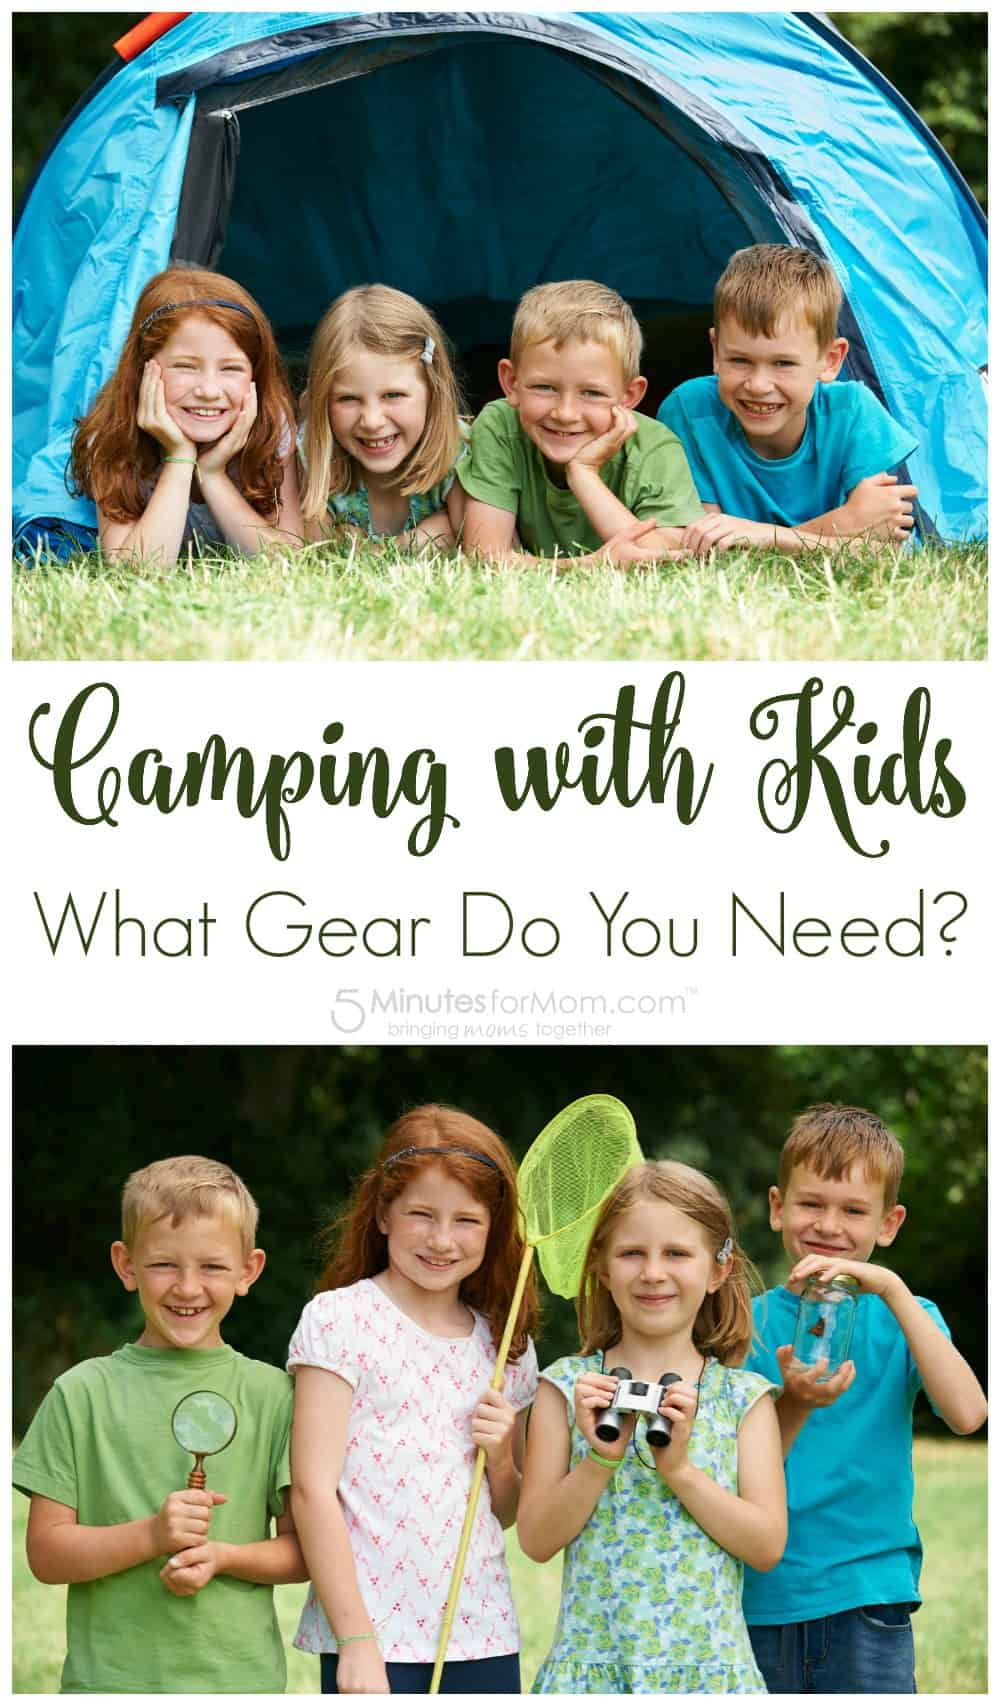 Camping with Kids - What Gear Do You Need